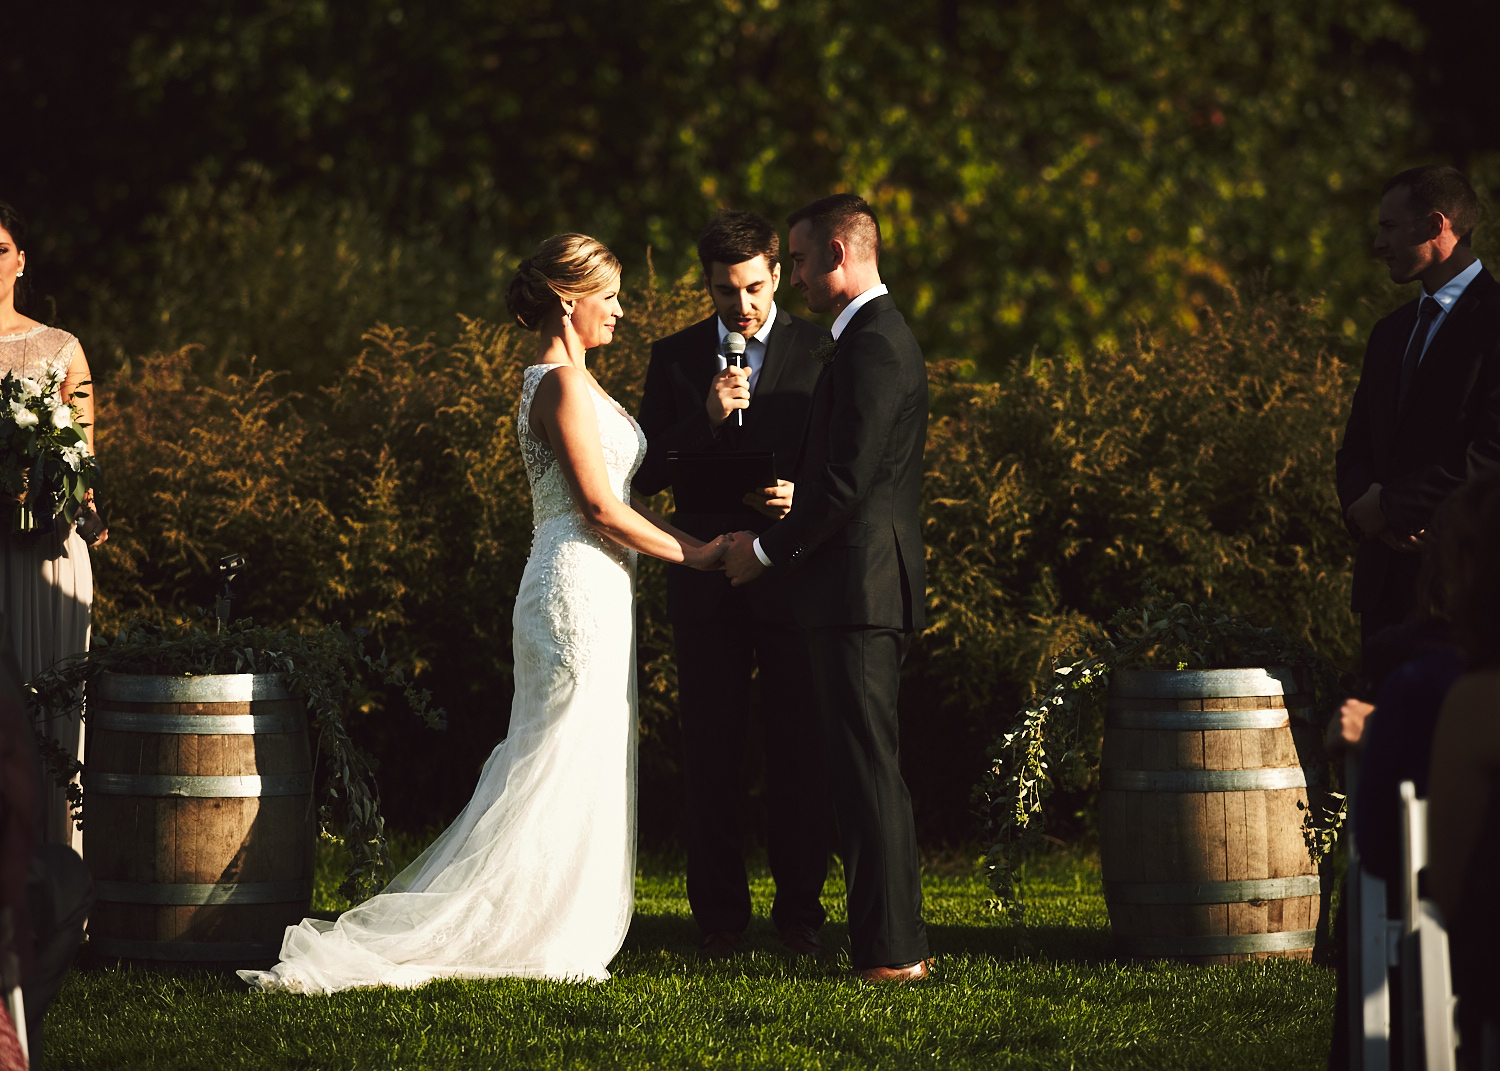 161013__T&J__PeronaFarmsWedding_By_BriJohnsonWeddings_0058.jpg